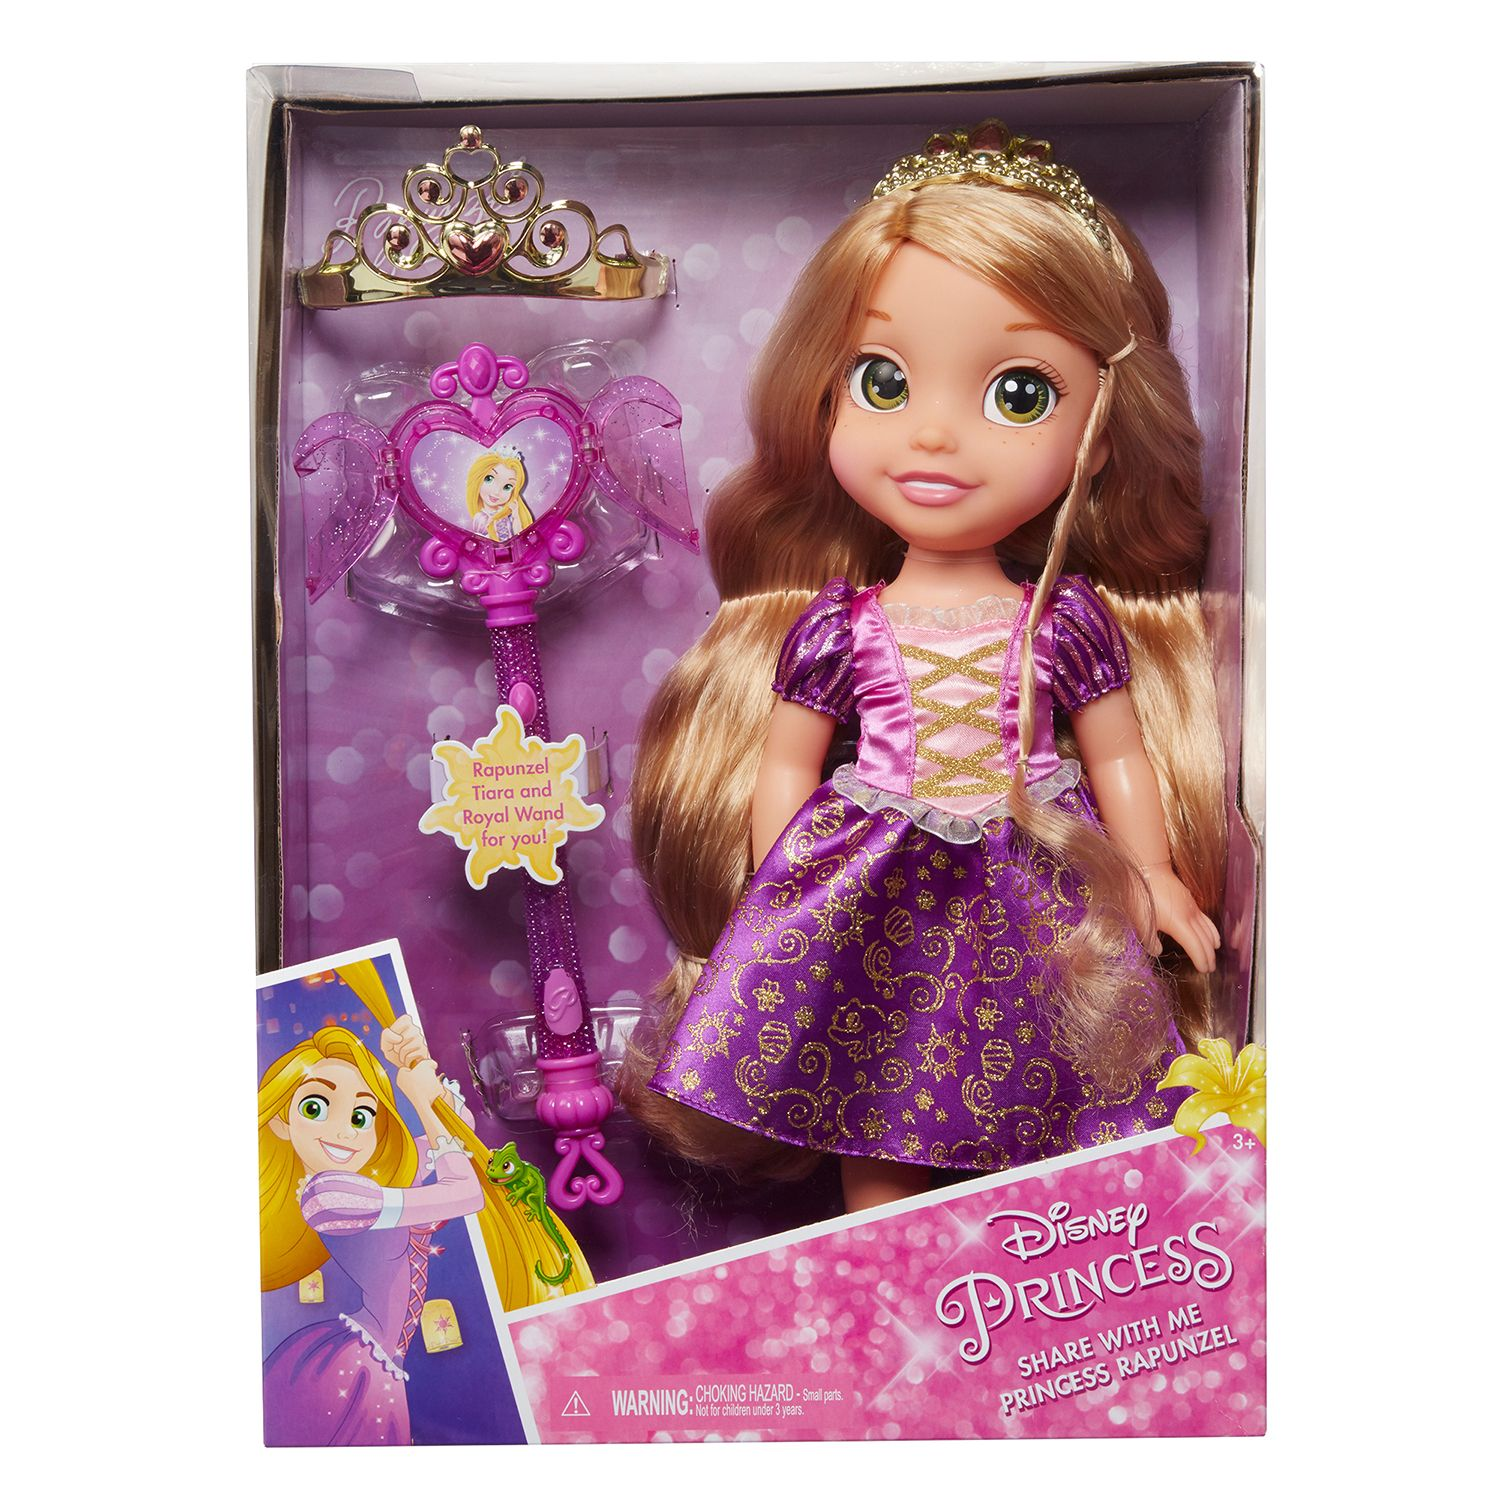 Disney Princess Rapunzel Toddler Doll & Accessories by